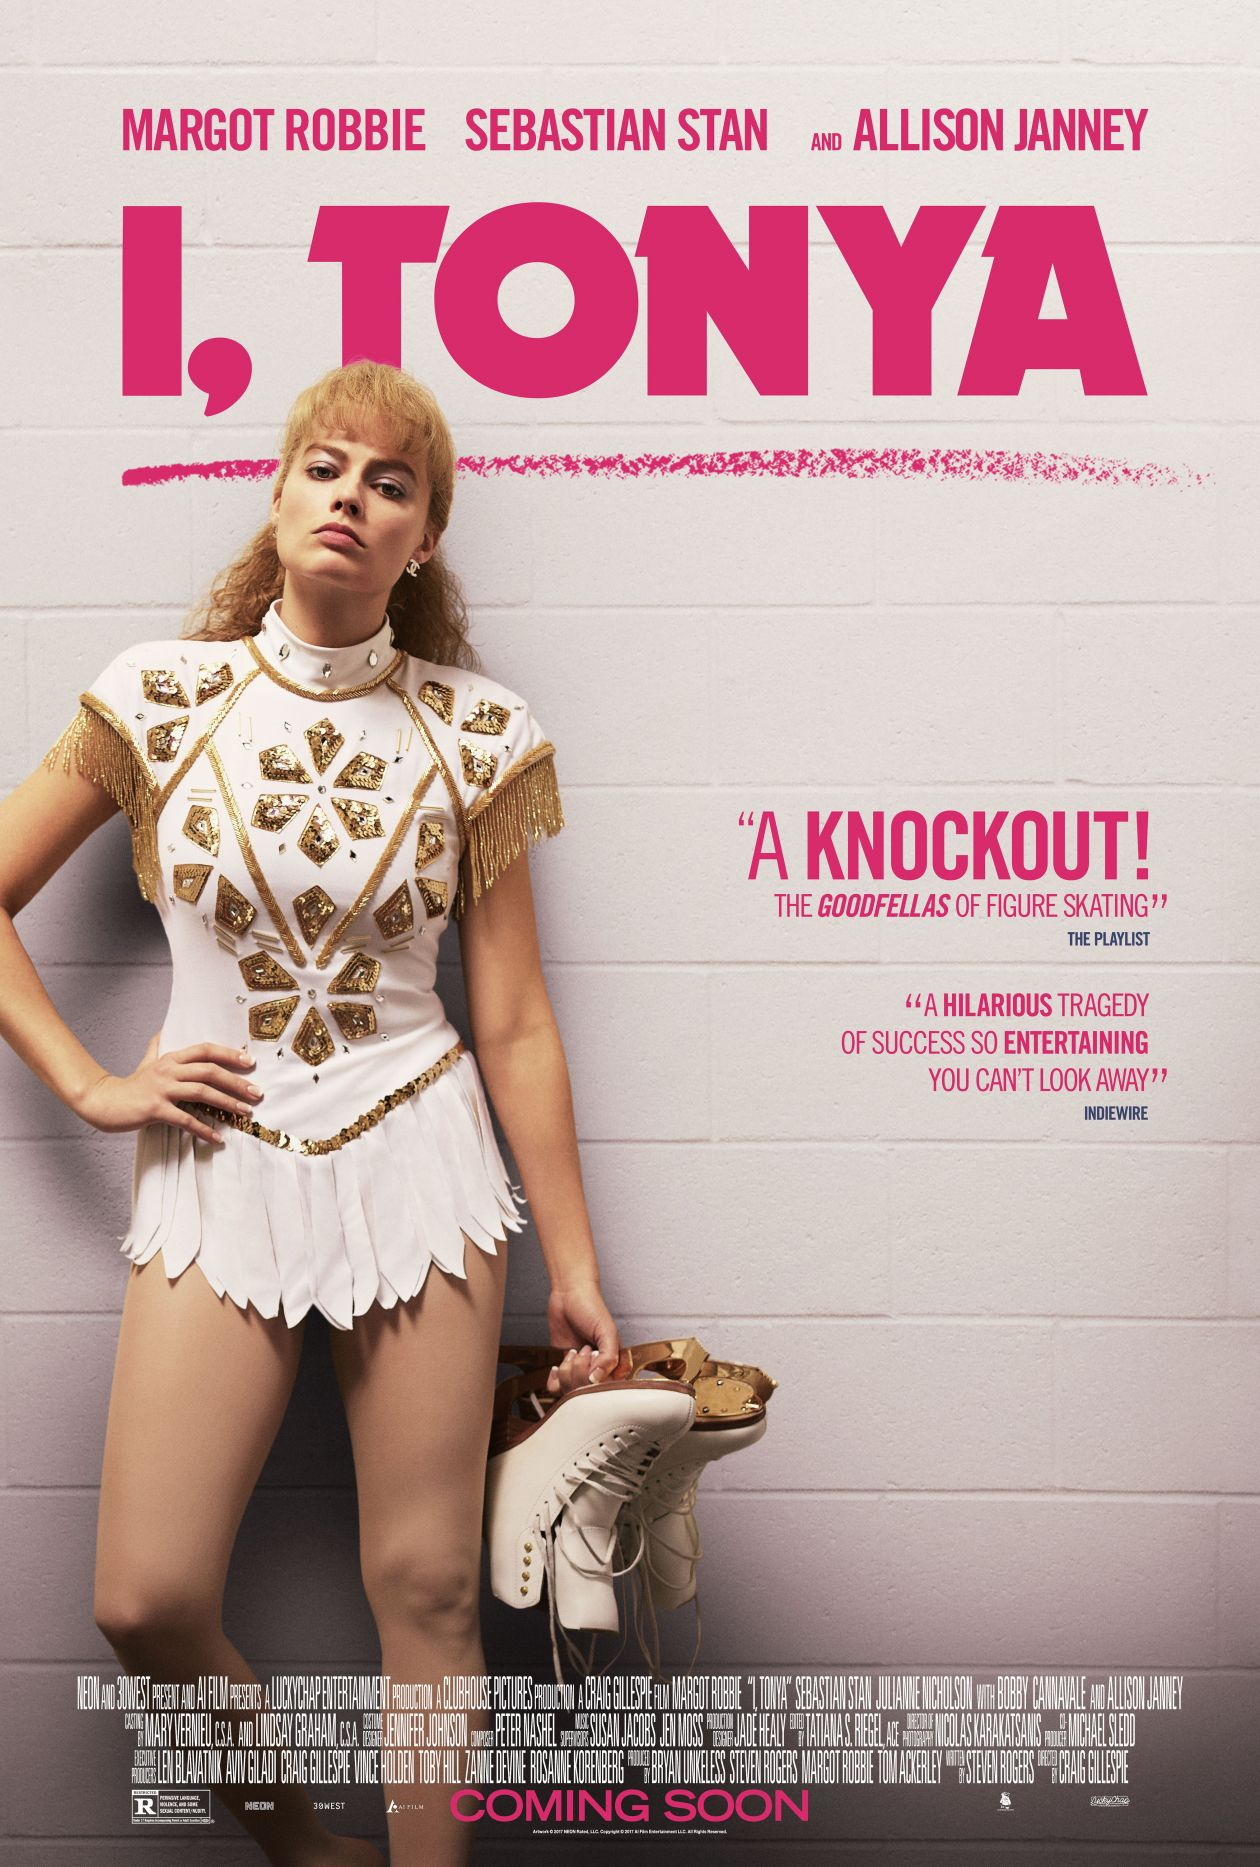 Margot Robbie actress / I, Tonya / Tonya Harding / Craig Gillespie 2017 / Movie Poster / Affiche film